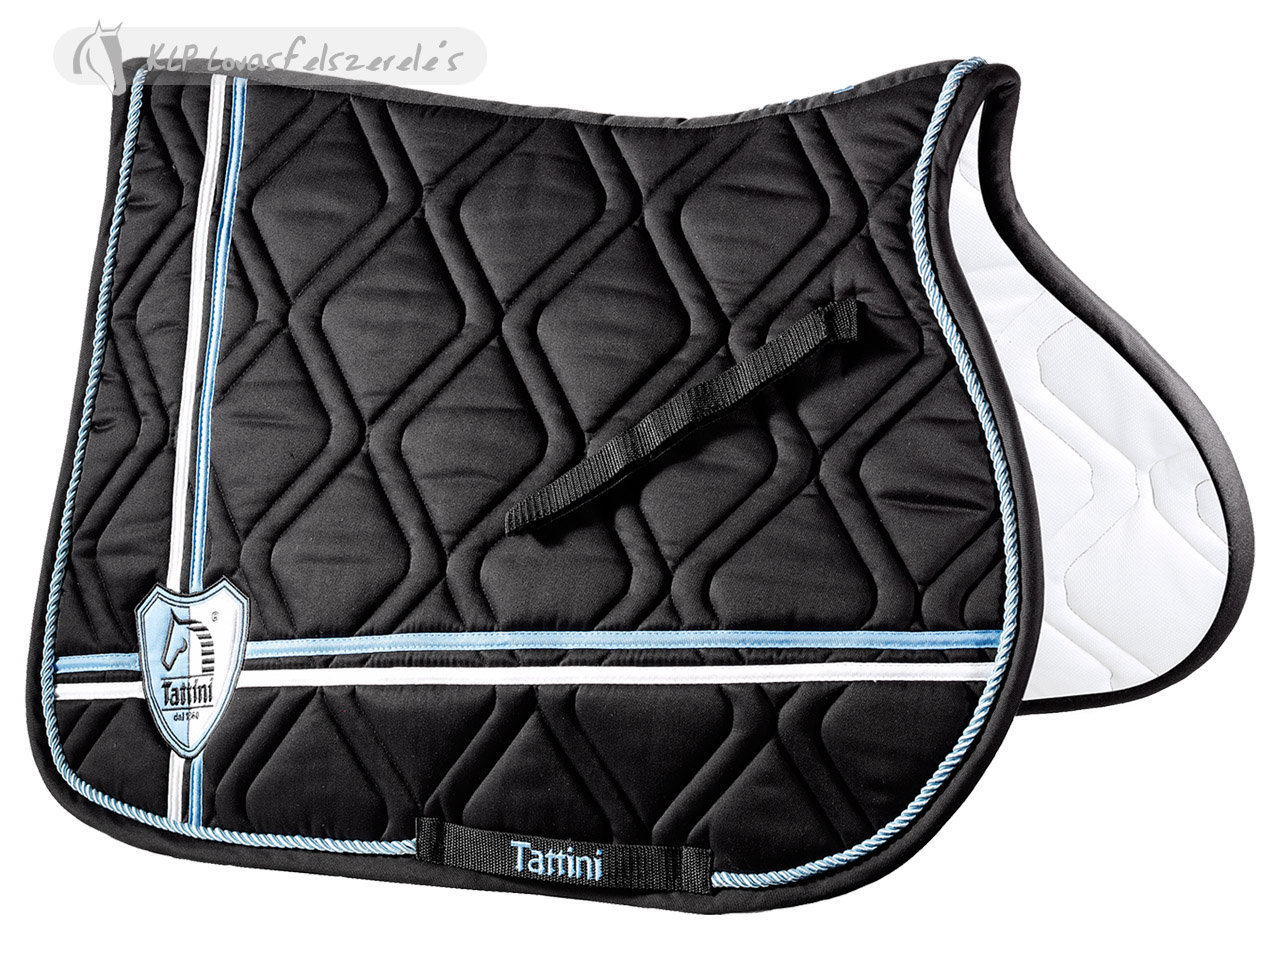 Tattini Saddle Pad Double Diamond Quilting